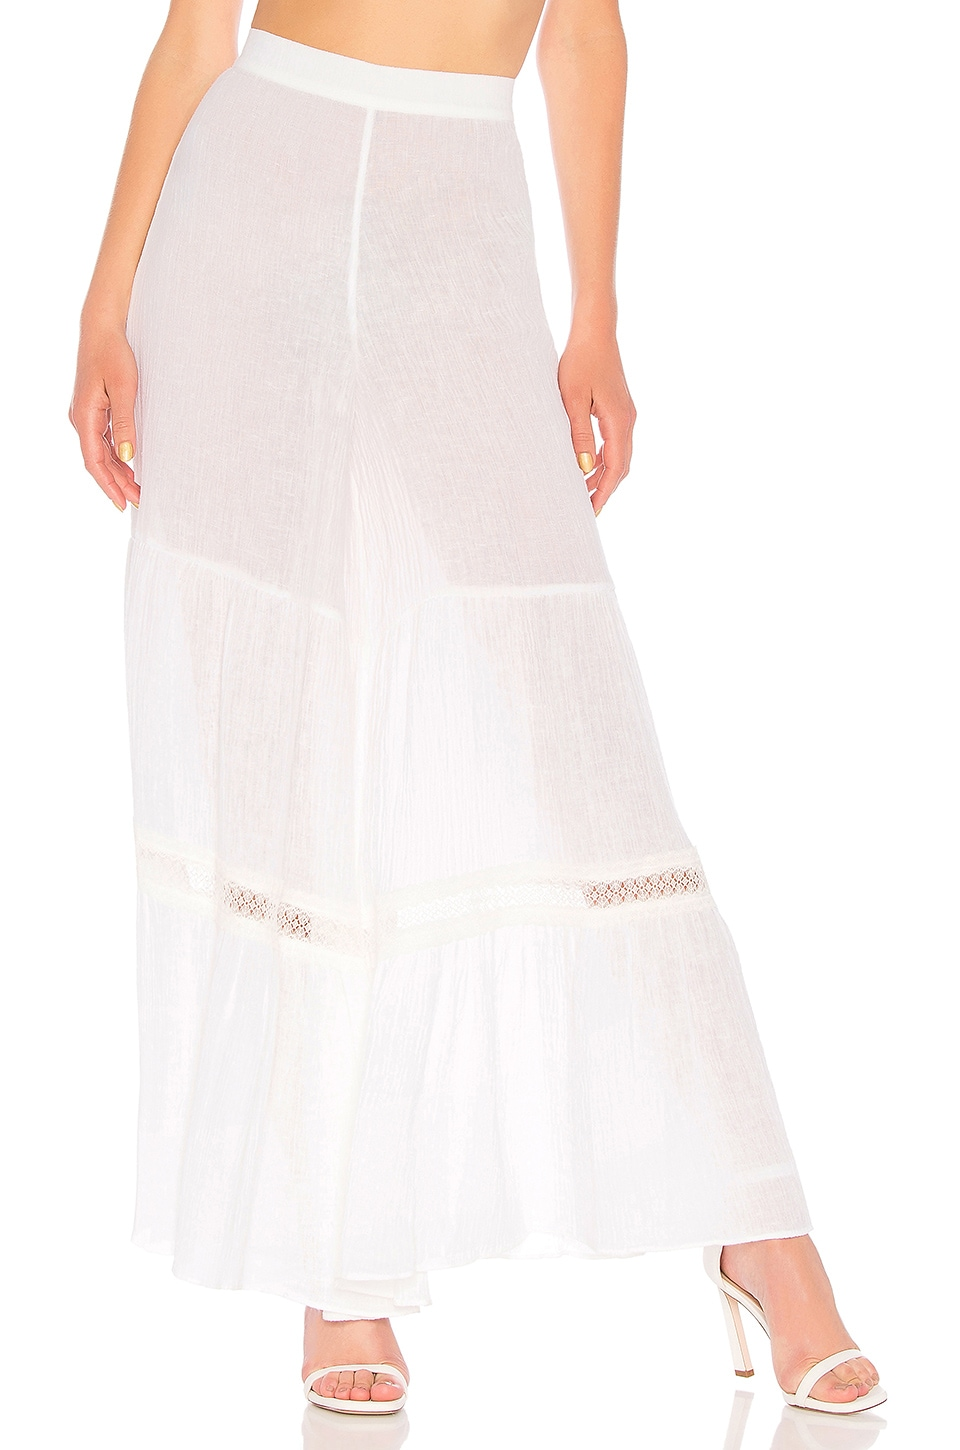 Alexis Minette Pant in White